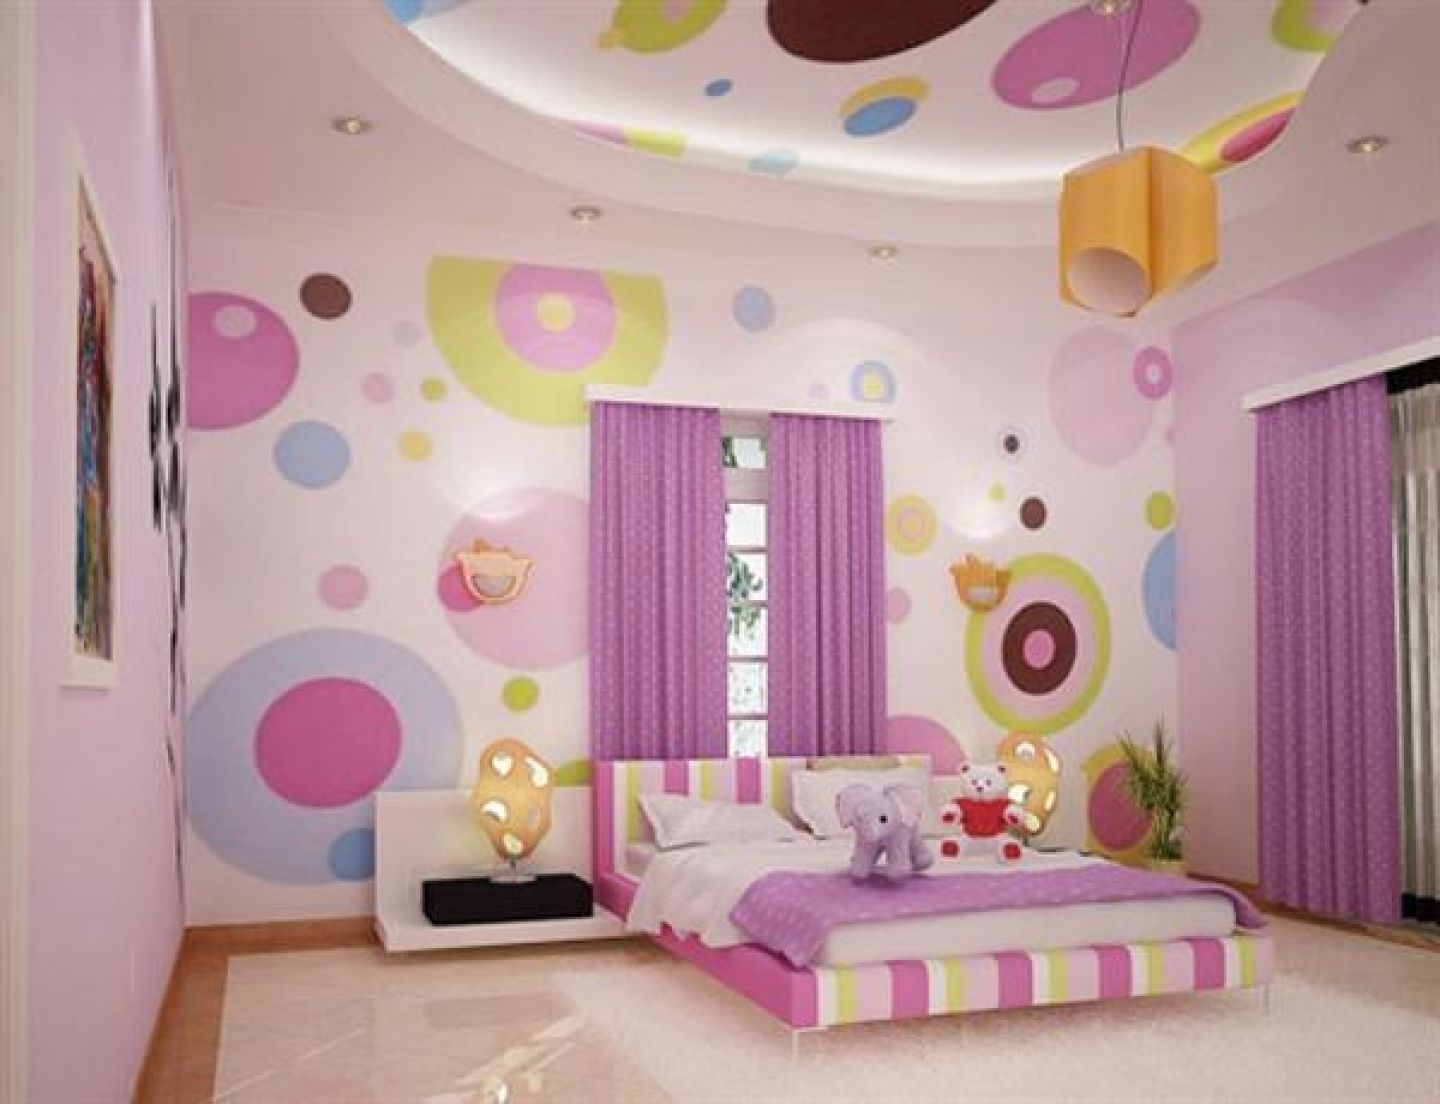 Bedroom Paint Ideas For Girls cheerful teen bedroom paint idea for girls with colorful circles